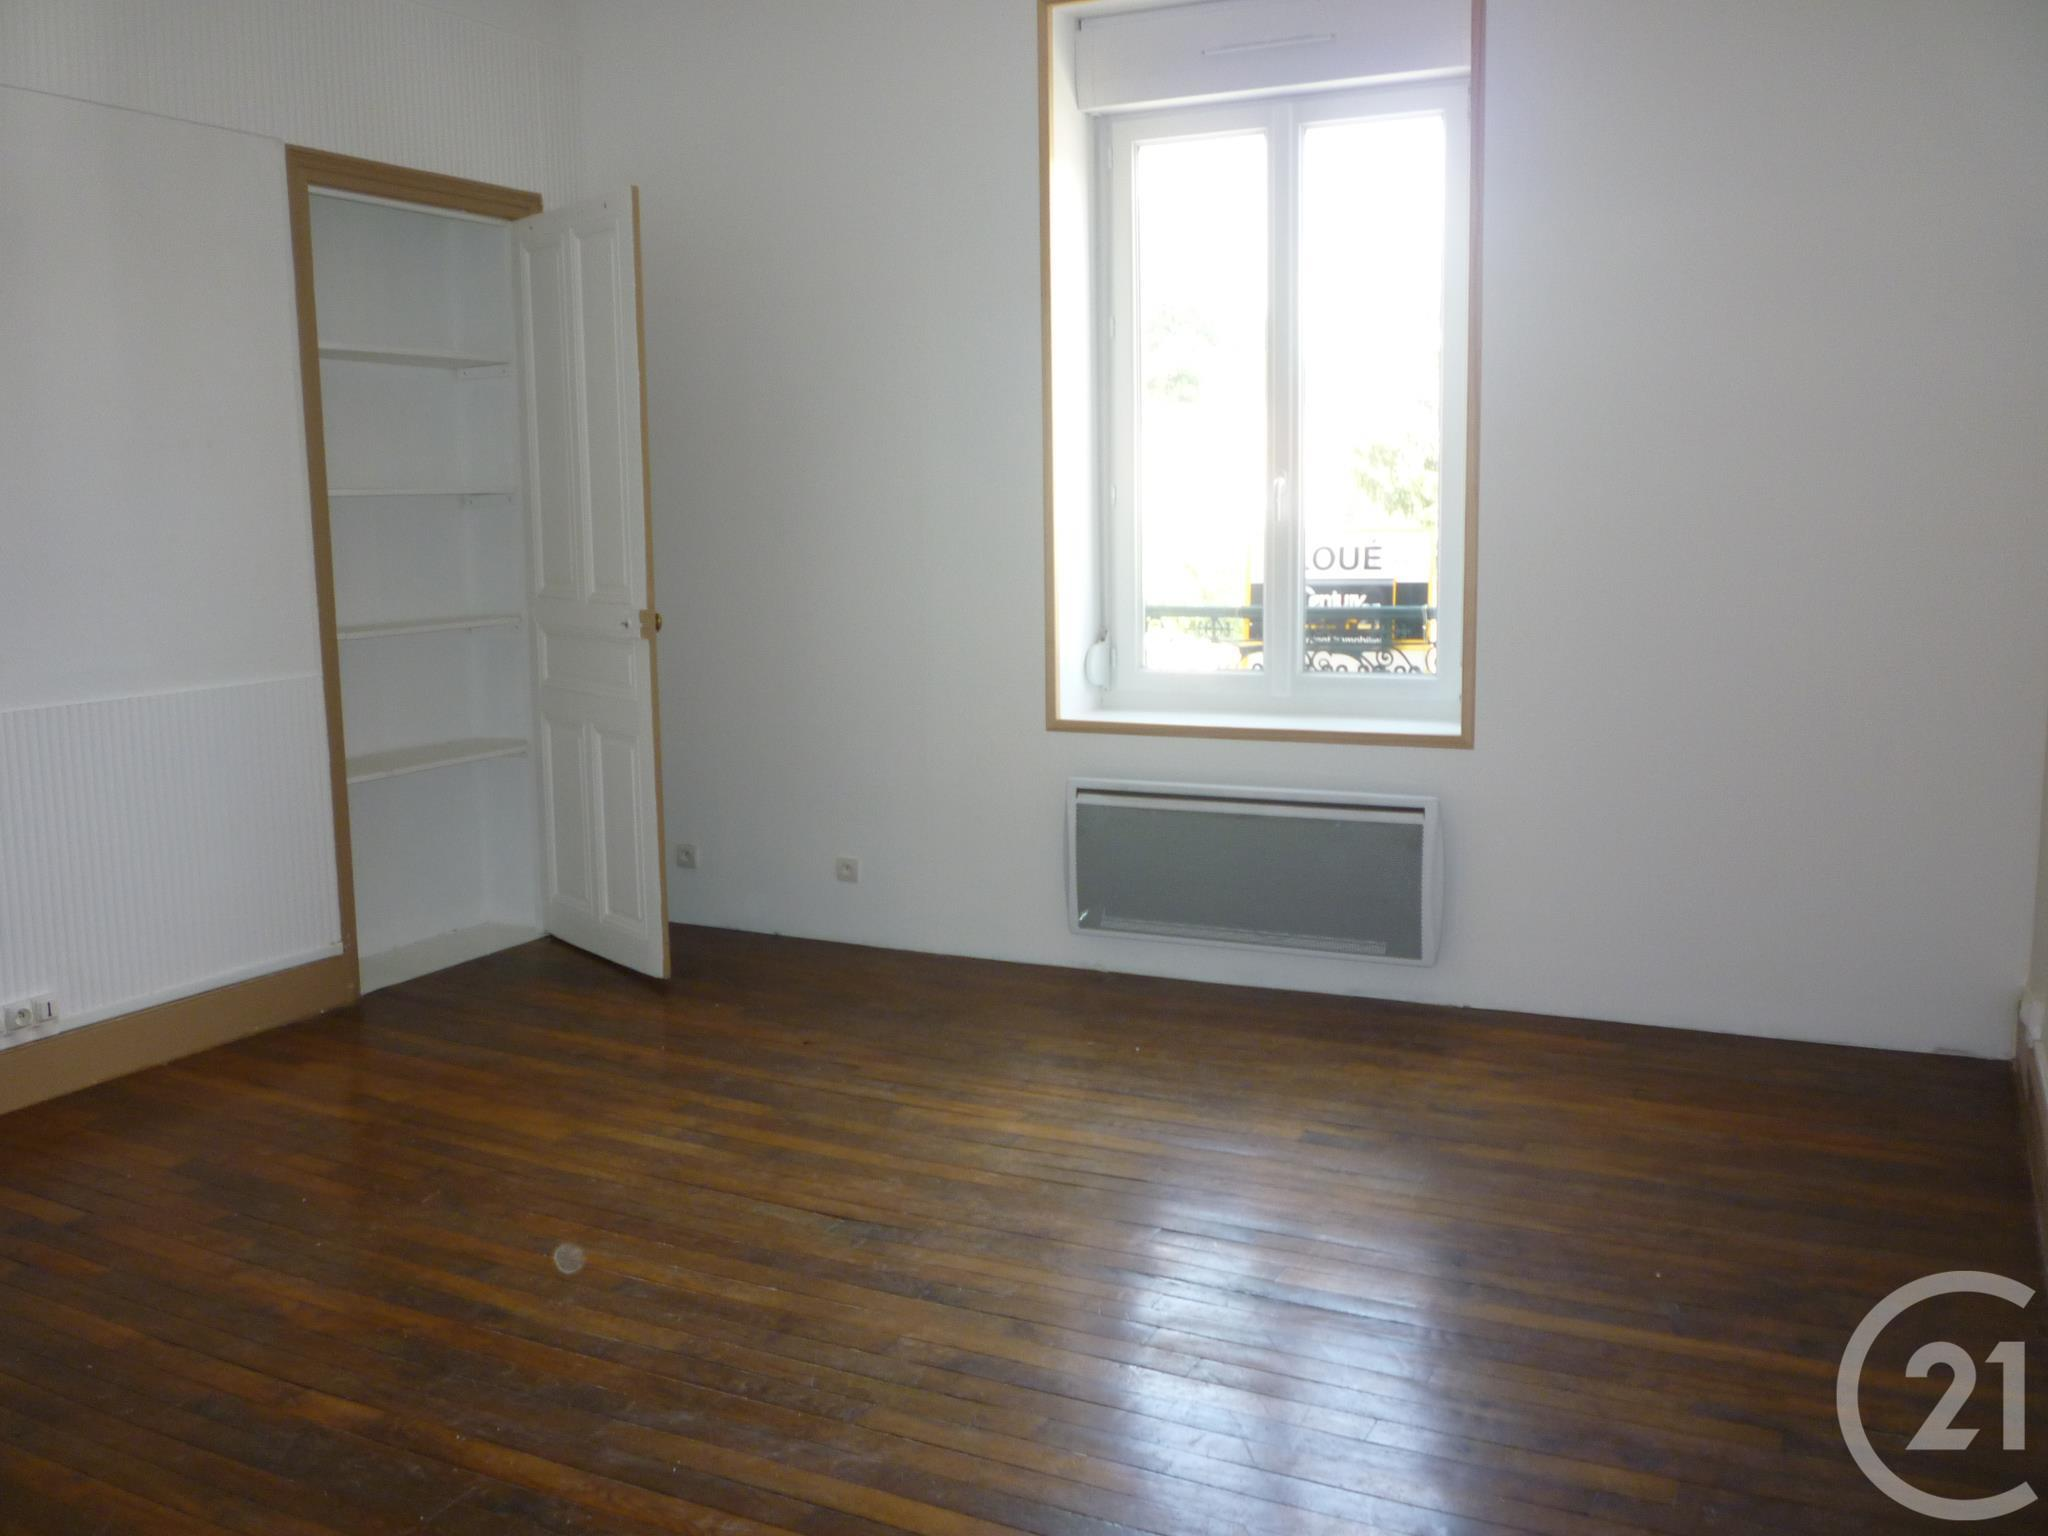 Appartement f1 à vendre - 1 pièce - 33 m2 - TROYES - 10 - CHAMPAGNE-ARDENNE